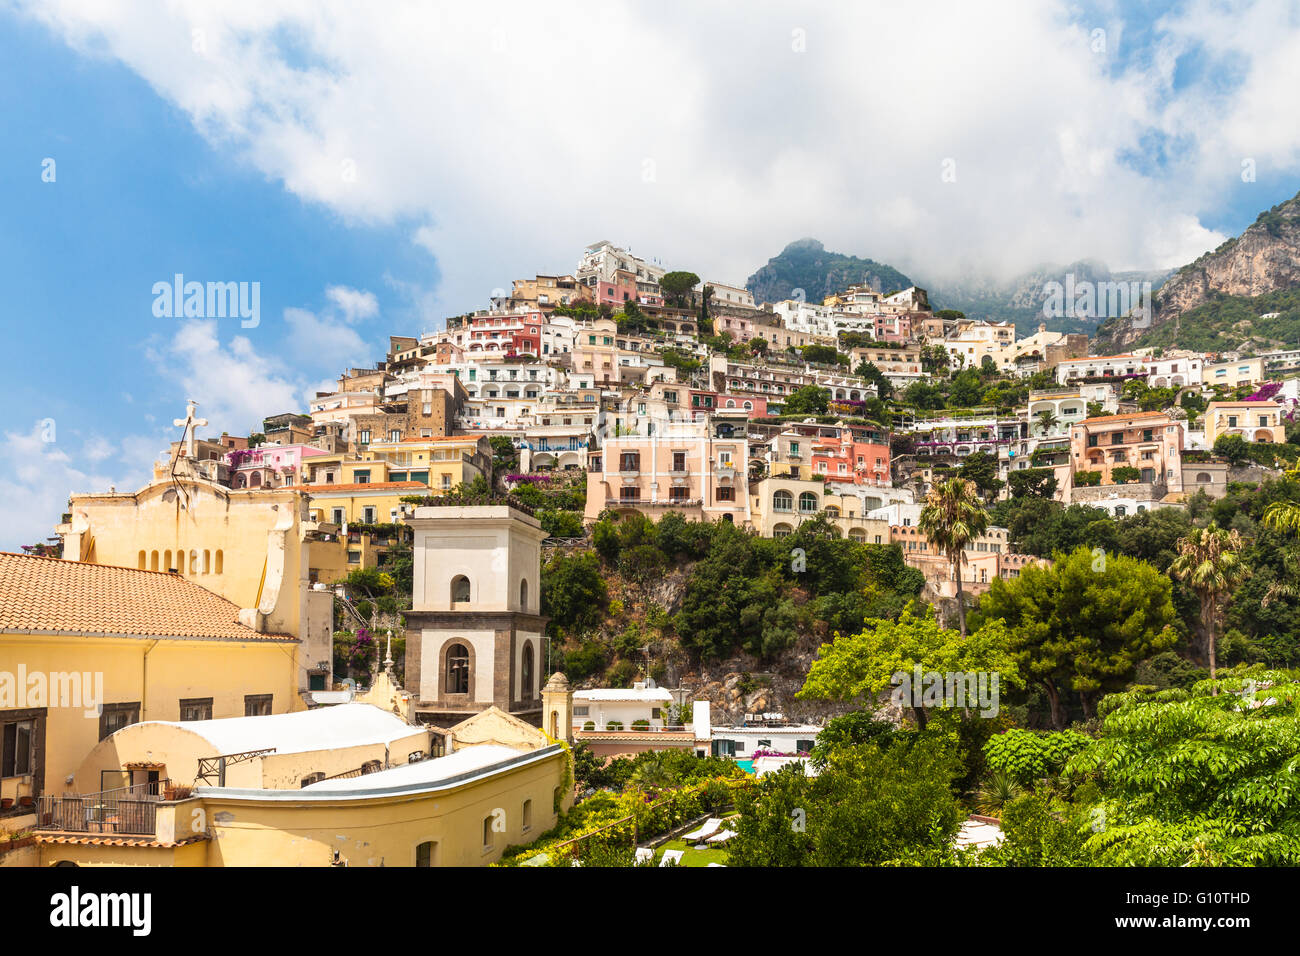 bunte h user am berg positano italien amalfi k ste stockfoto bild 103896169 alamy. Black Bedroom Furniture Sets. Home Design Ideas